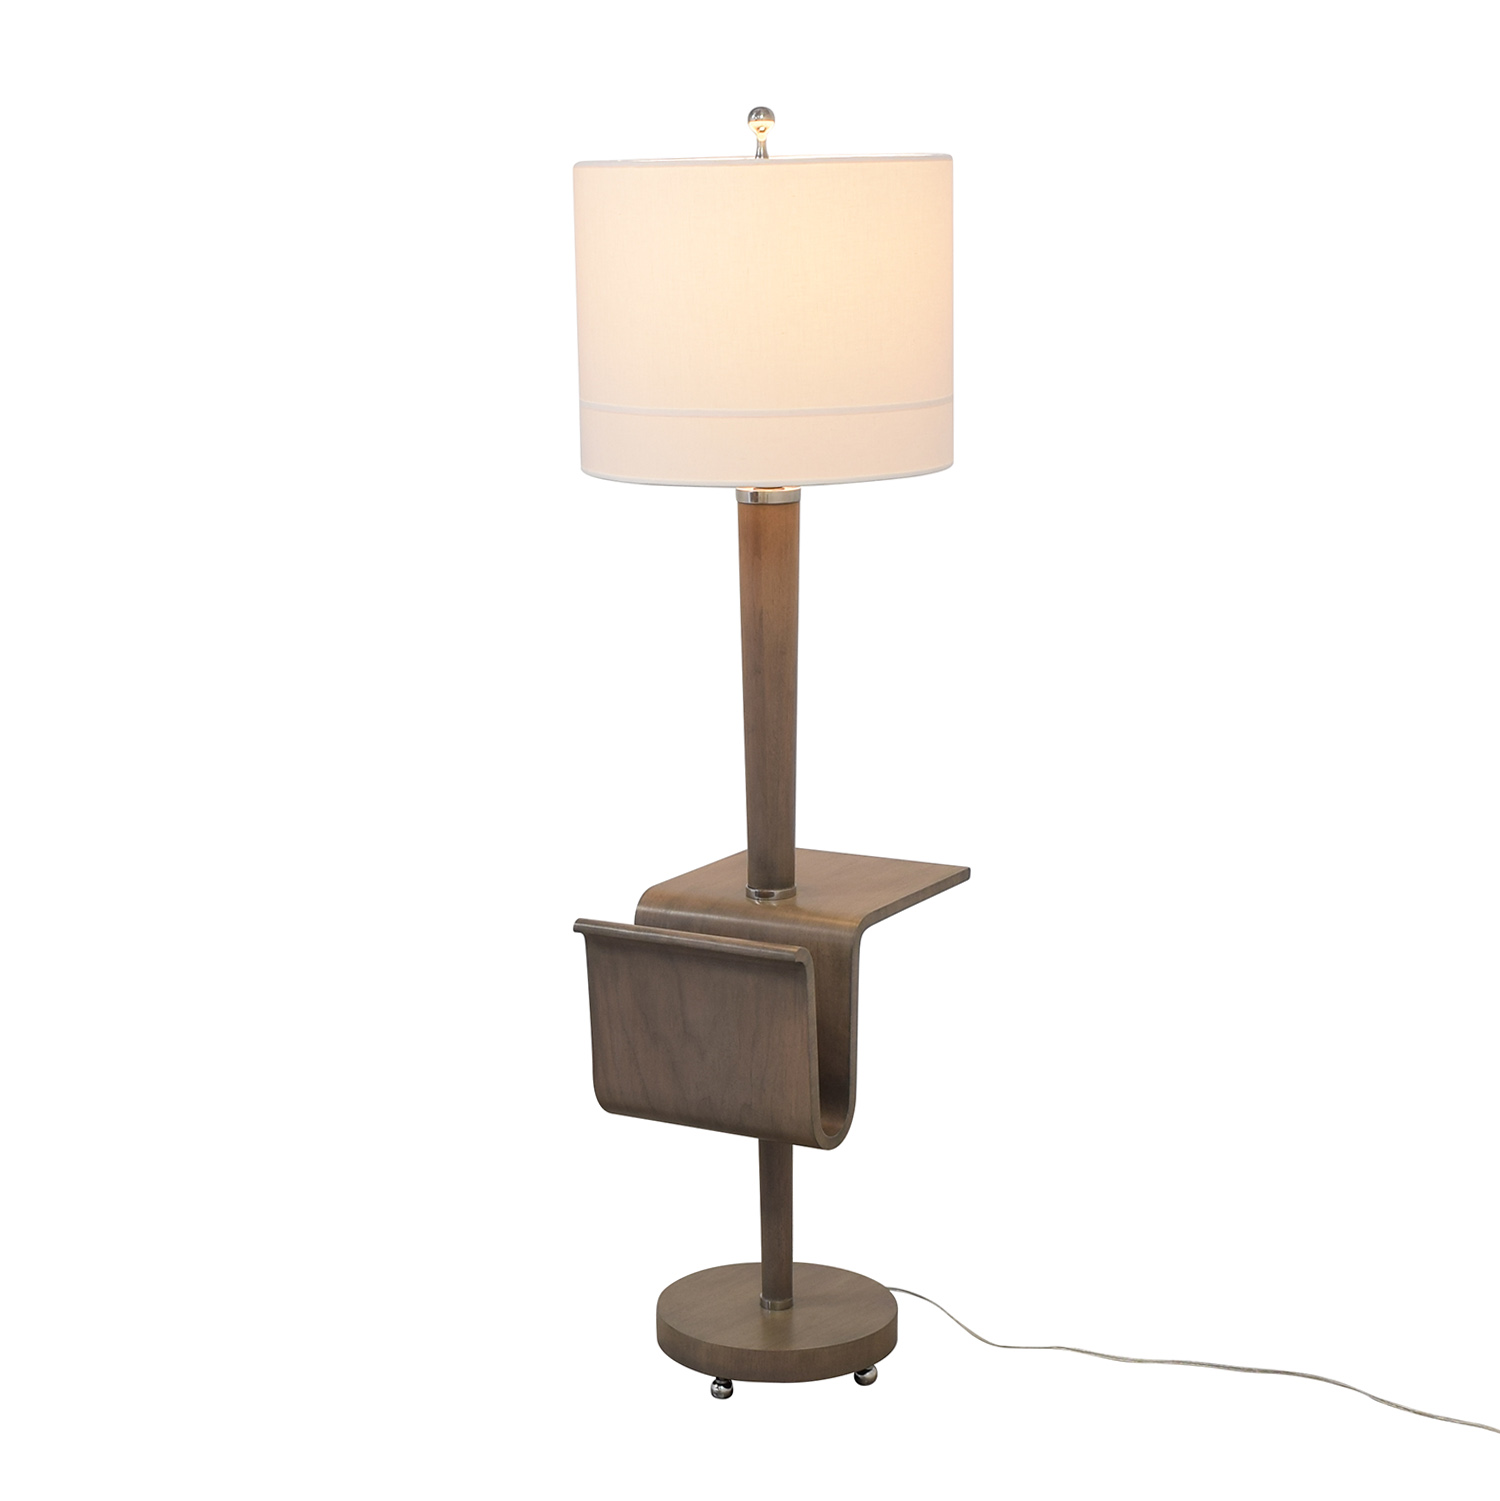 Stonebrook Interiors Stonebrook Interiors Floor Lamp with Magazine Holder Decor